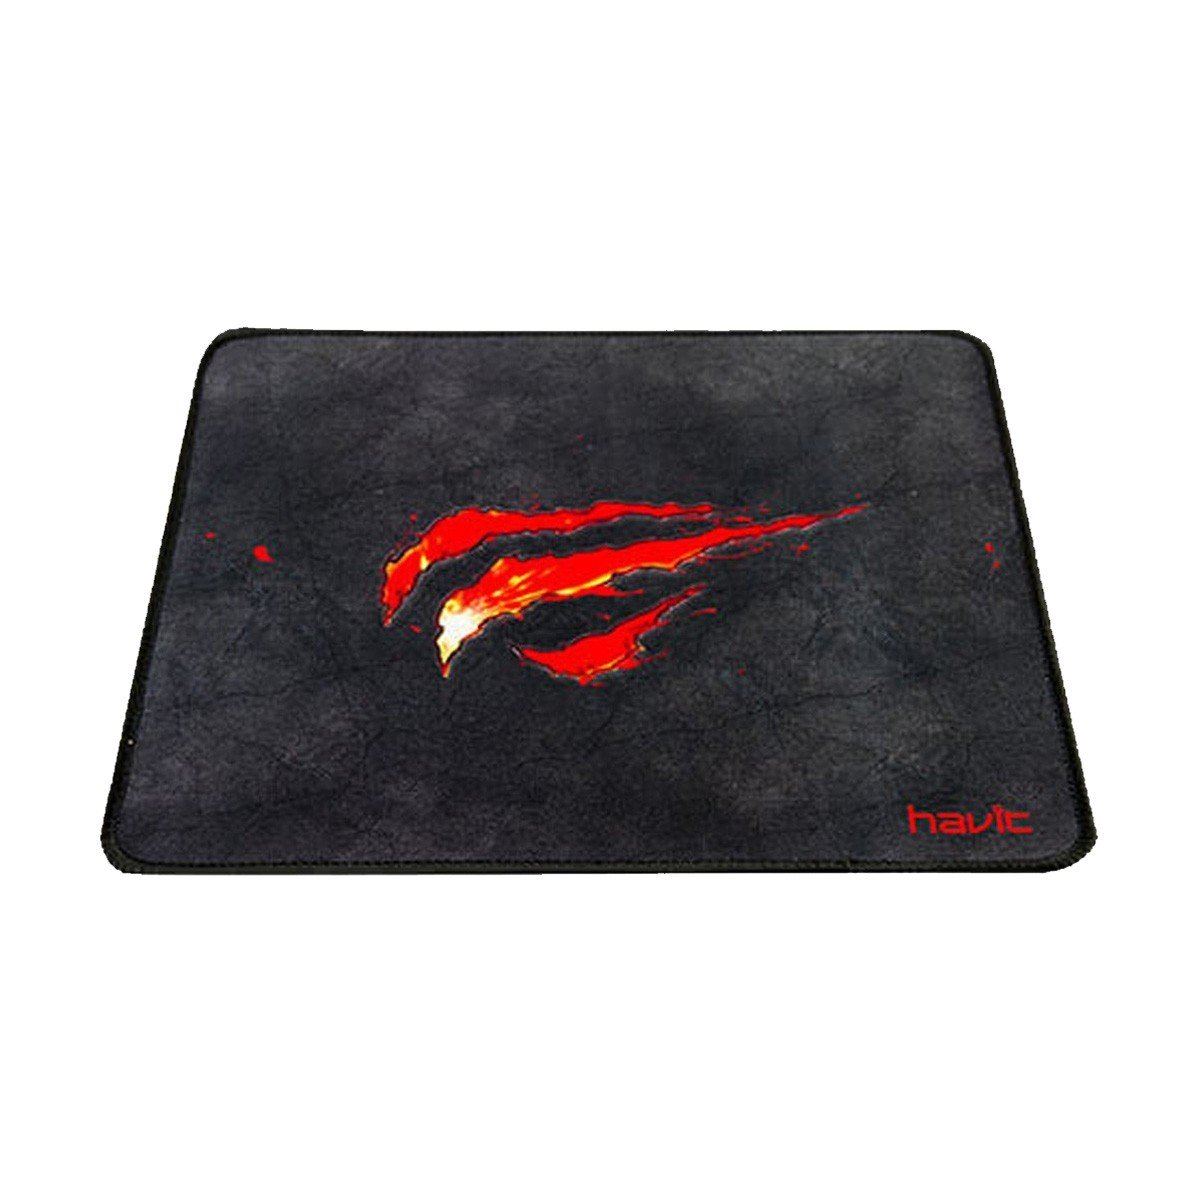 MOUSE PAD GAMEING BLACK HAVIT ,Mouse